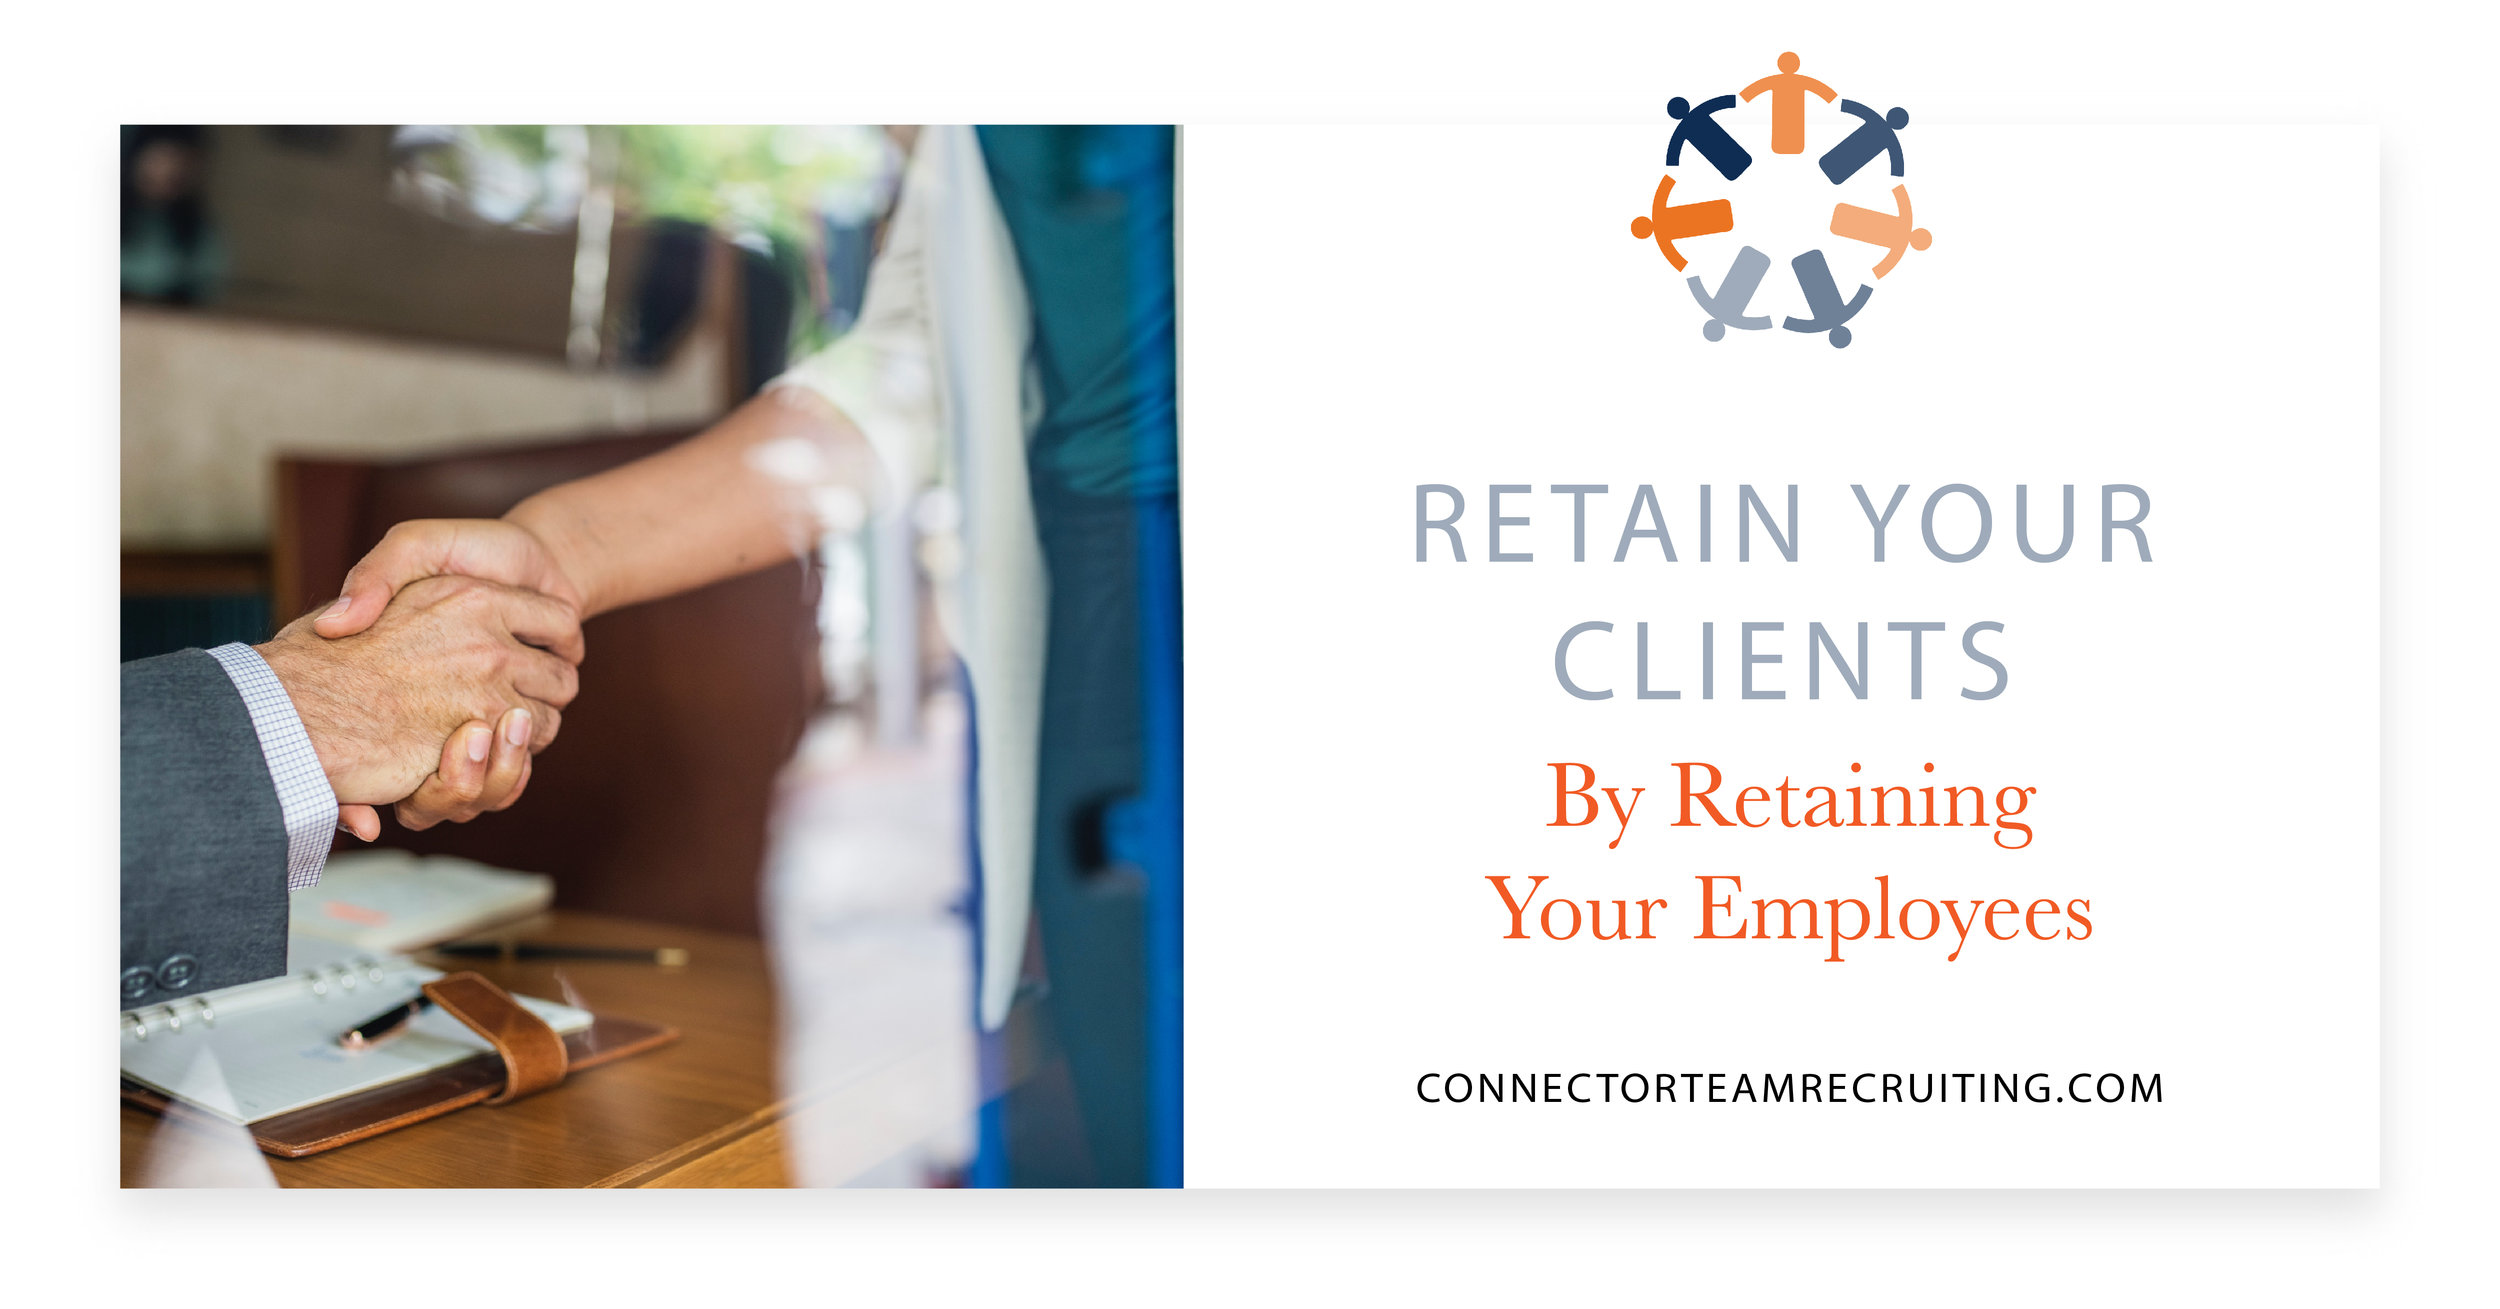 Retain Your Clients By Retaining Your Employees | Connector Team Recruiting.jpg